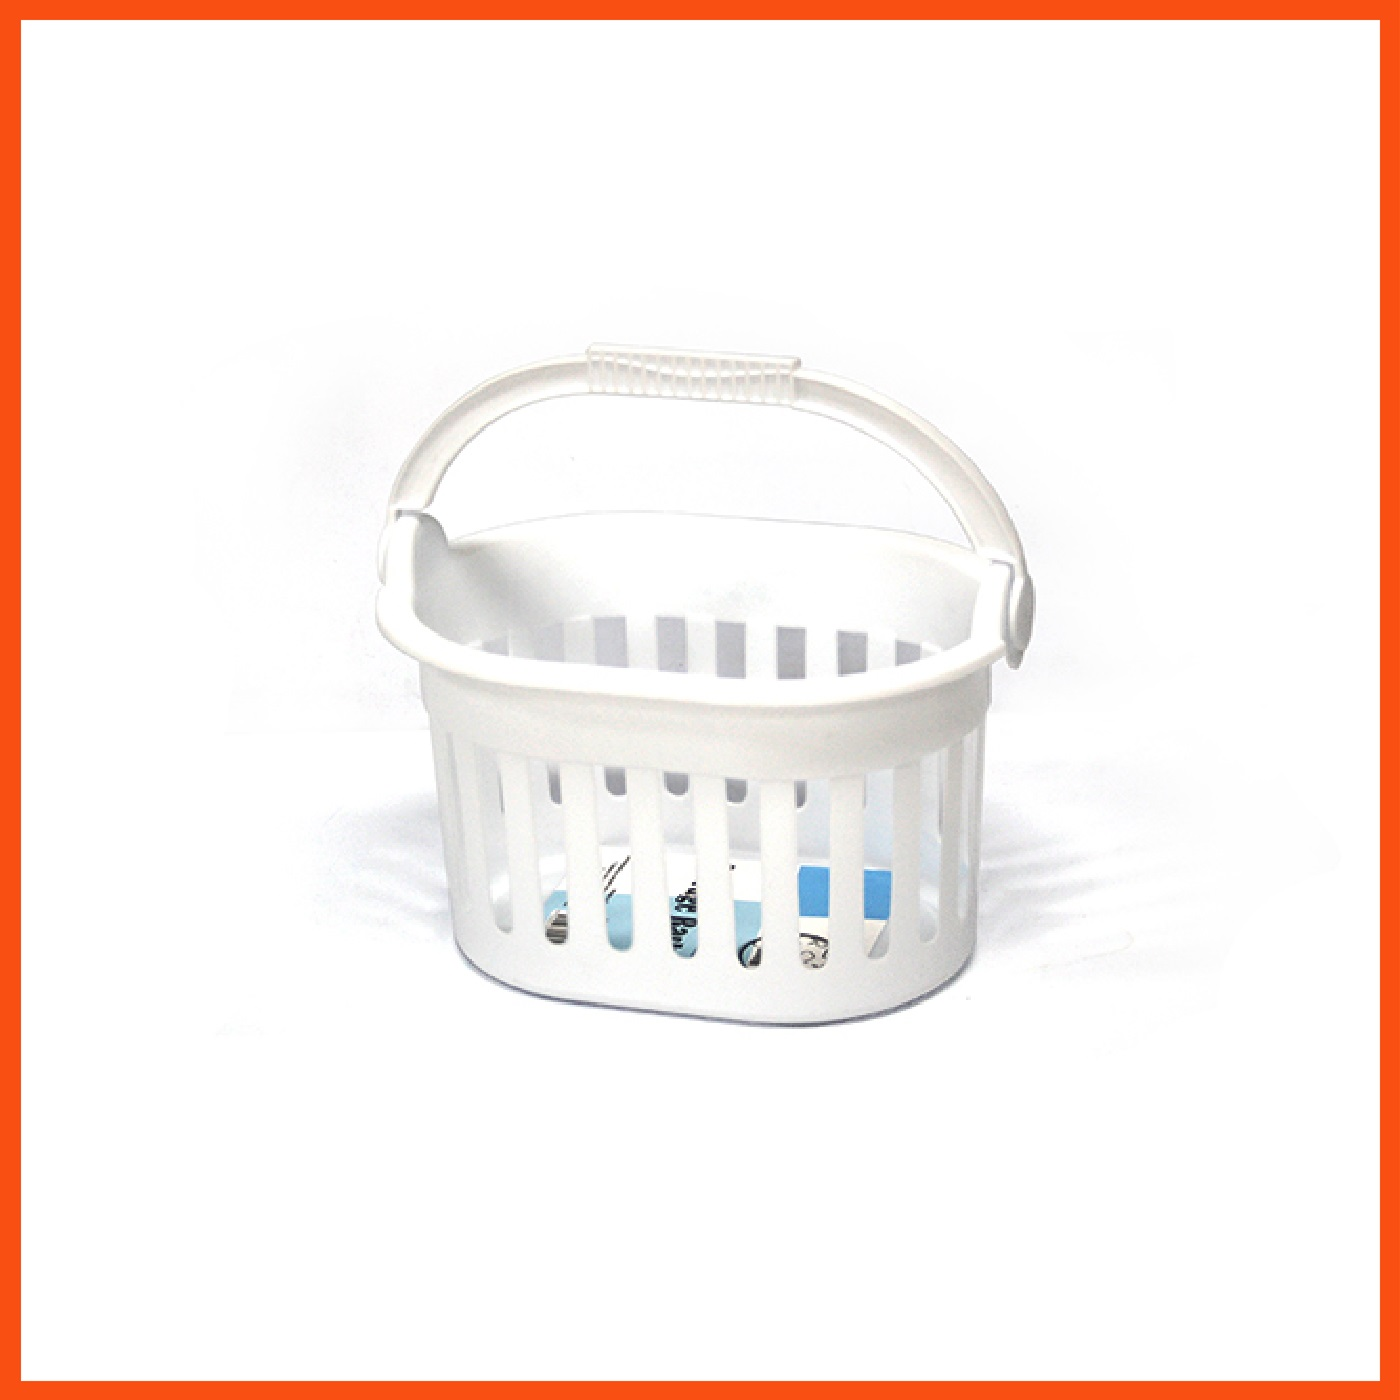 48 x clothespins carrier basket white plastic laundry